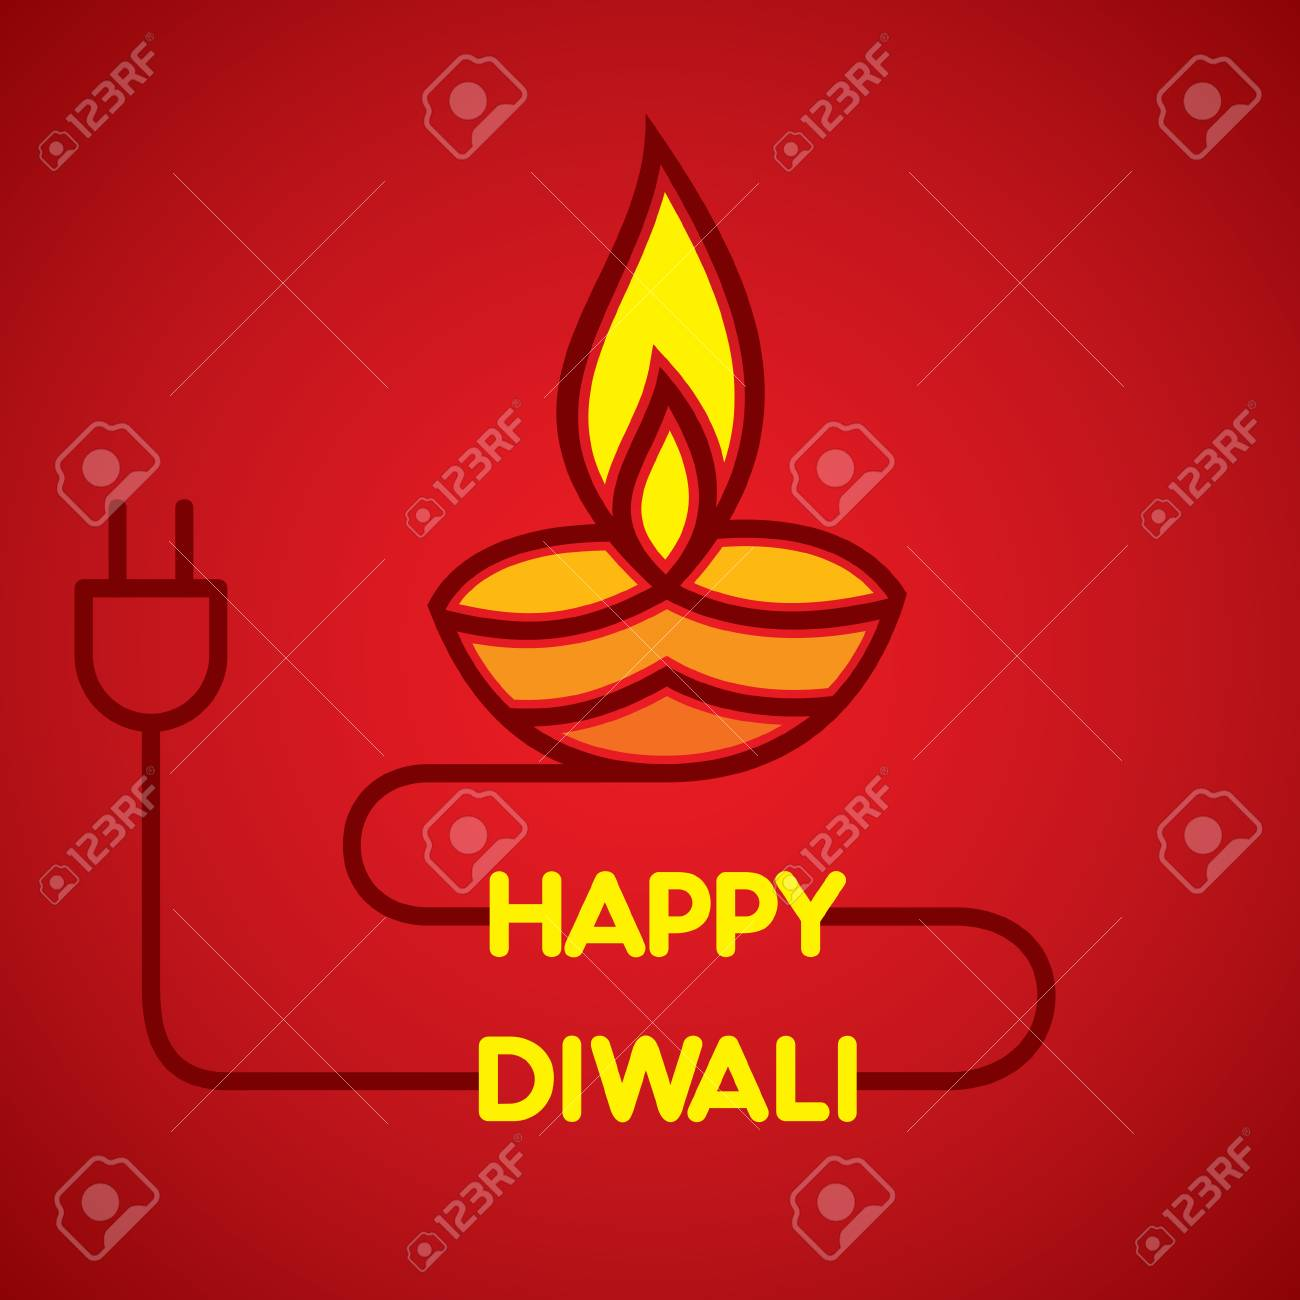 A artistic greeting card with cable and diya indian diwali festival a artistic greeting card with cable and diya indian diwali festival celebration design stock vector m4hsunfo